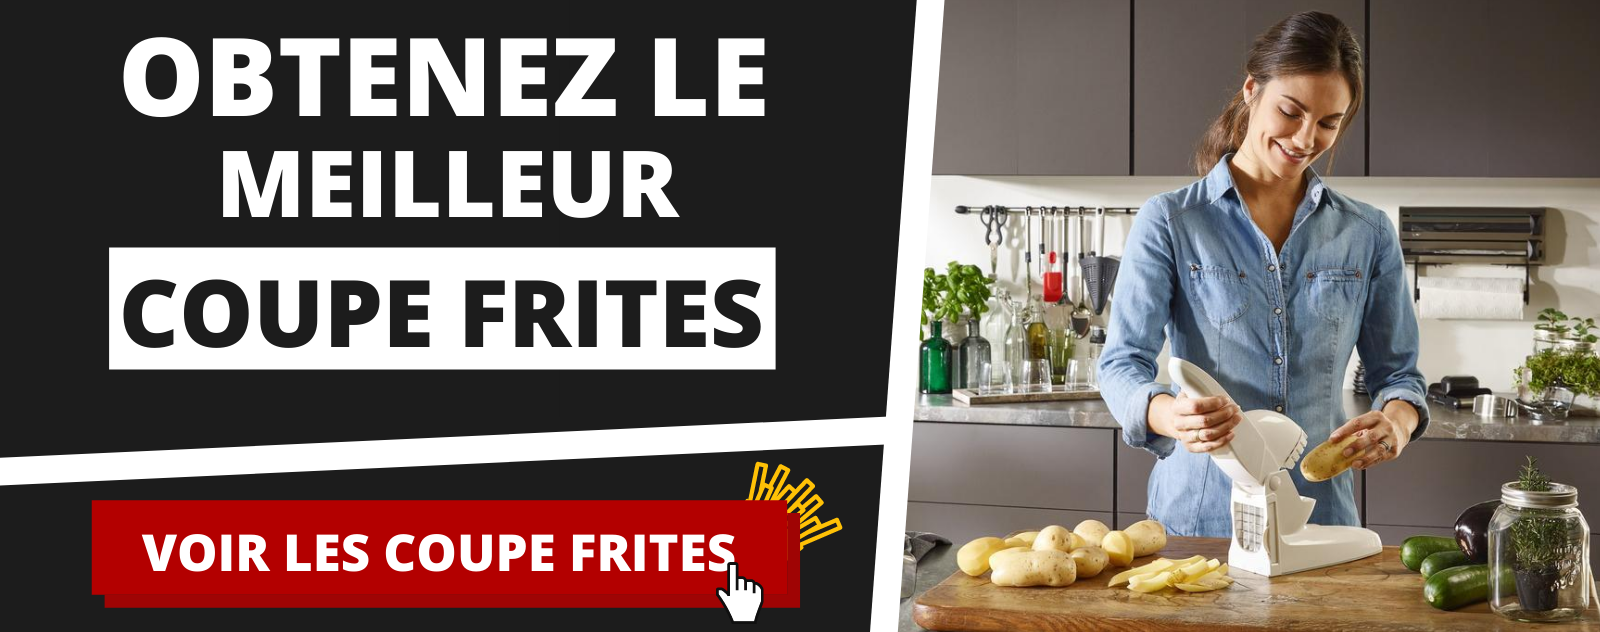 Les Coupe Frites